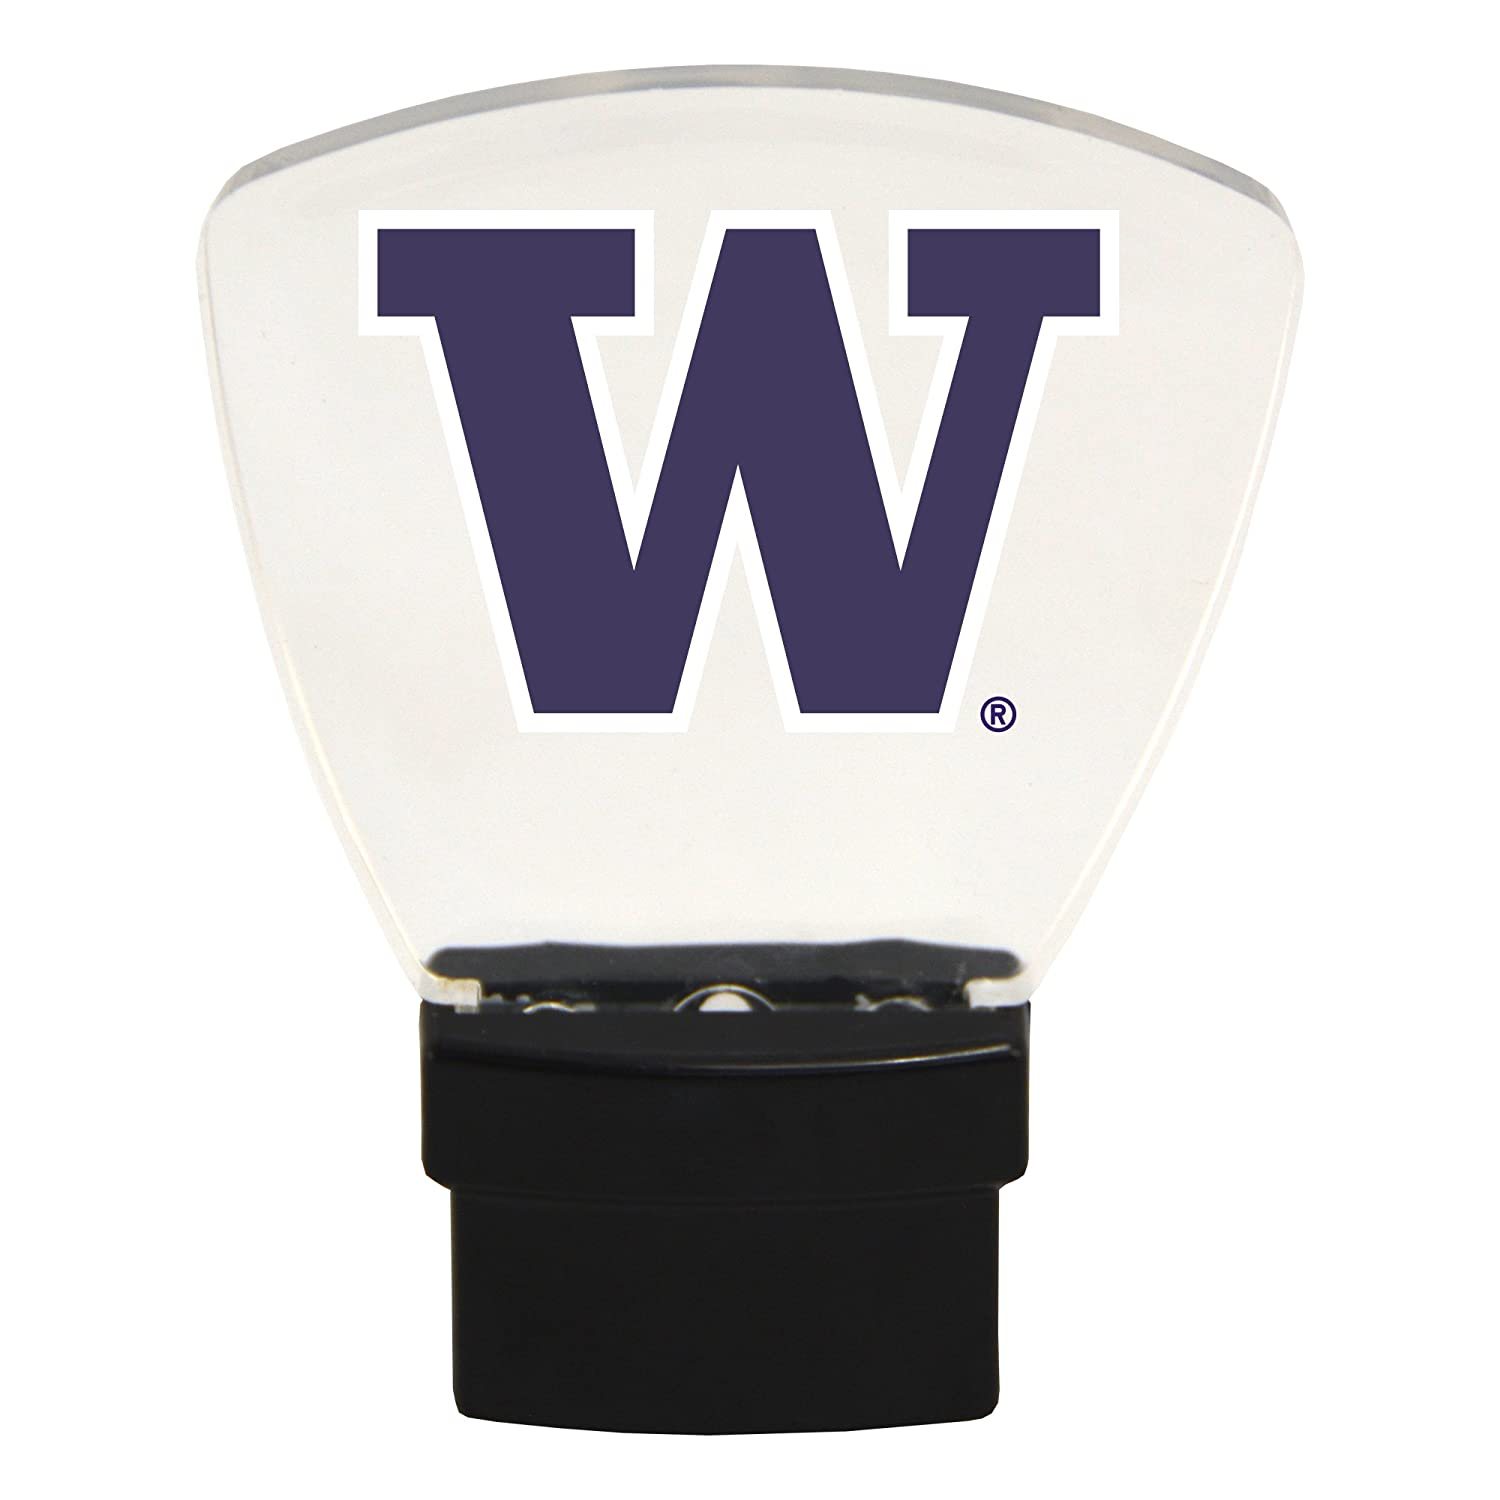 Plug in-Great Sports Fan Gift for Adults-Babies-Kids Room Authentic Street Signs NCAA Officially Licensed-LED Night Light-Super Energy Efficient-Prime Power Saving 0.5 watt